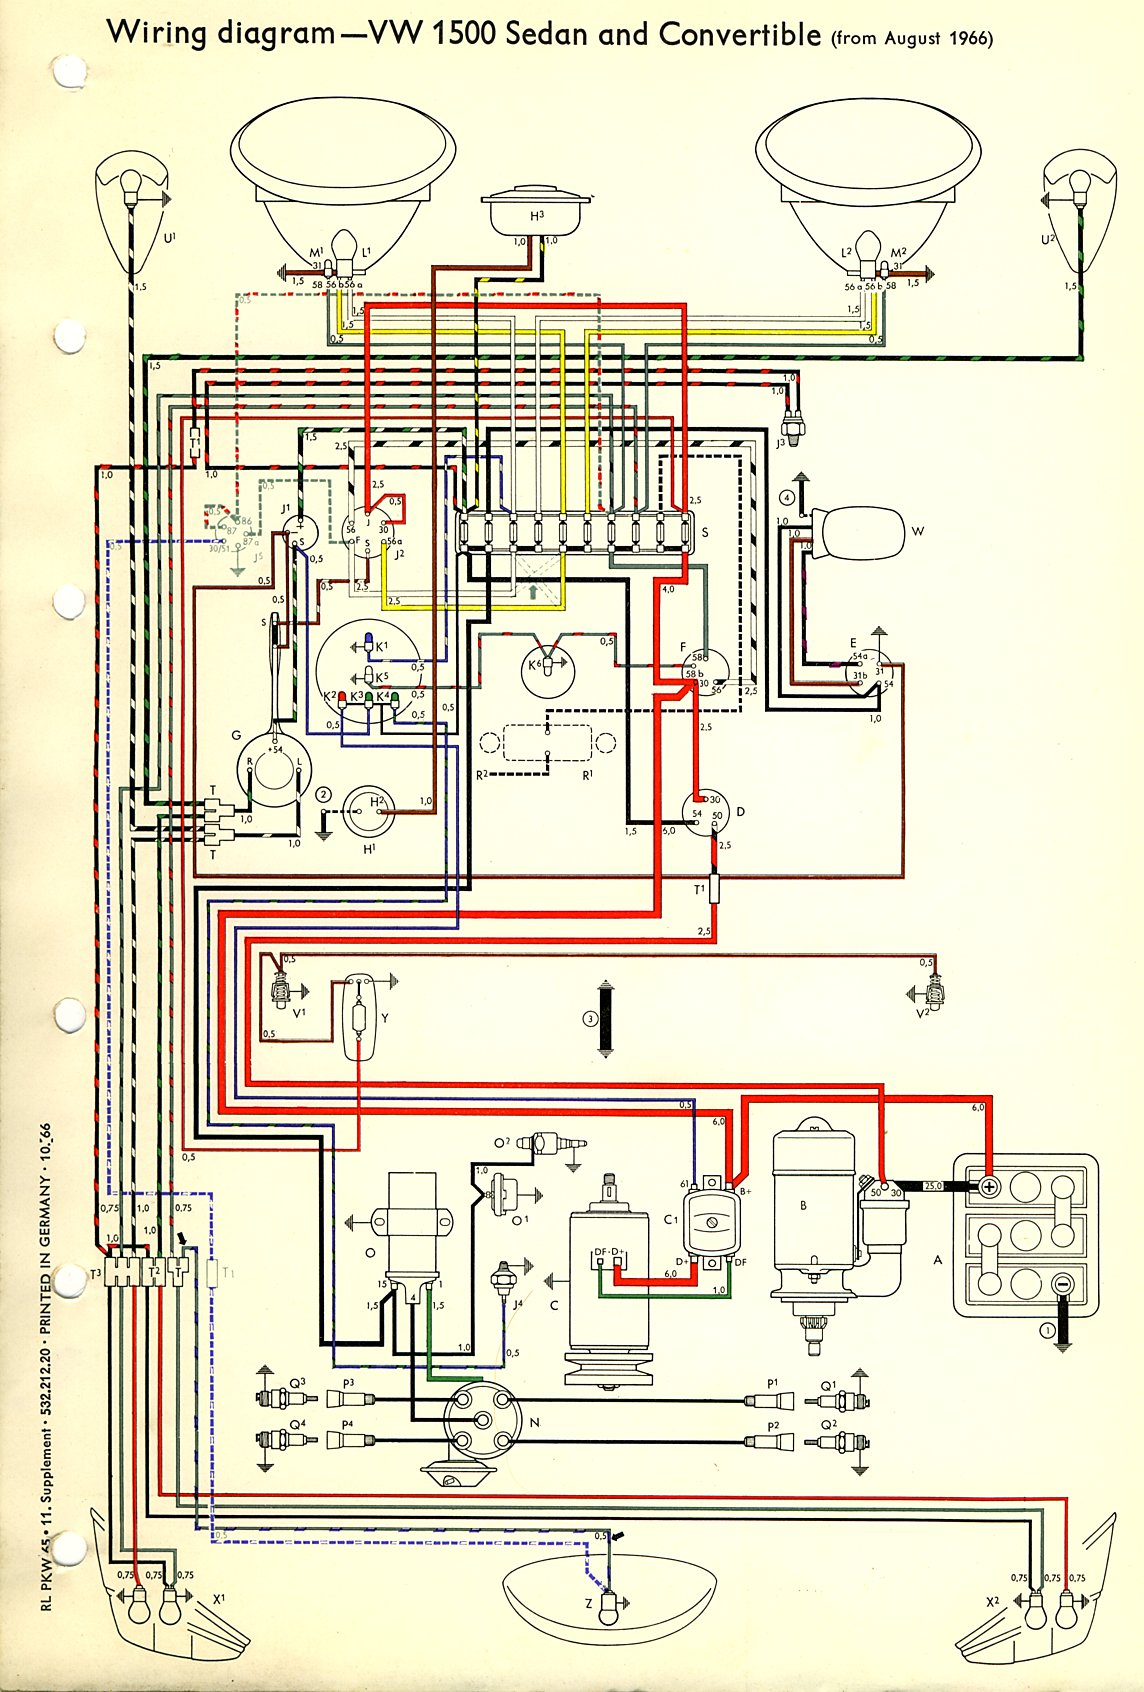 bug_67 67 vw bus wiring harness 71 vw wiring harness \u2022 wiring diagrams Wiring Harness Diagram at metegol.co